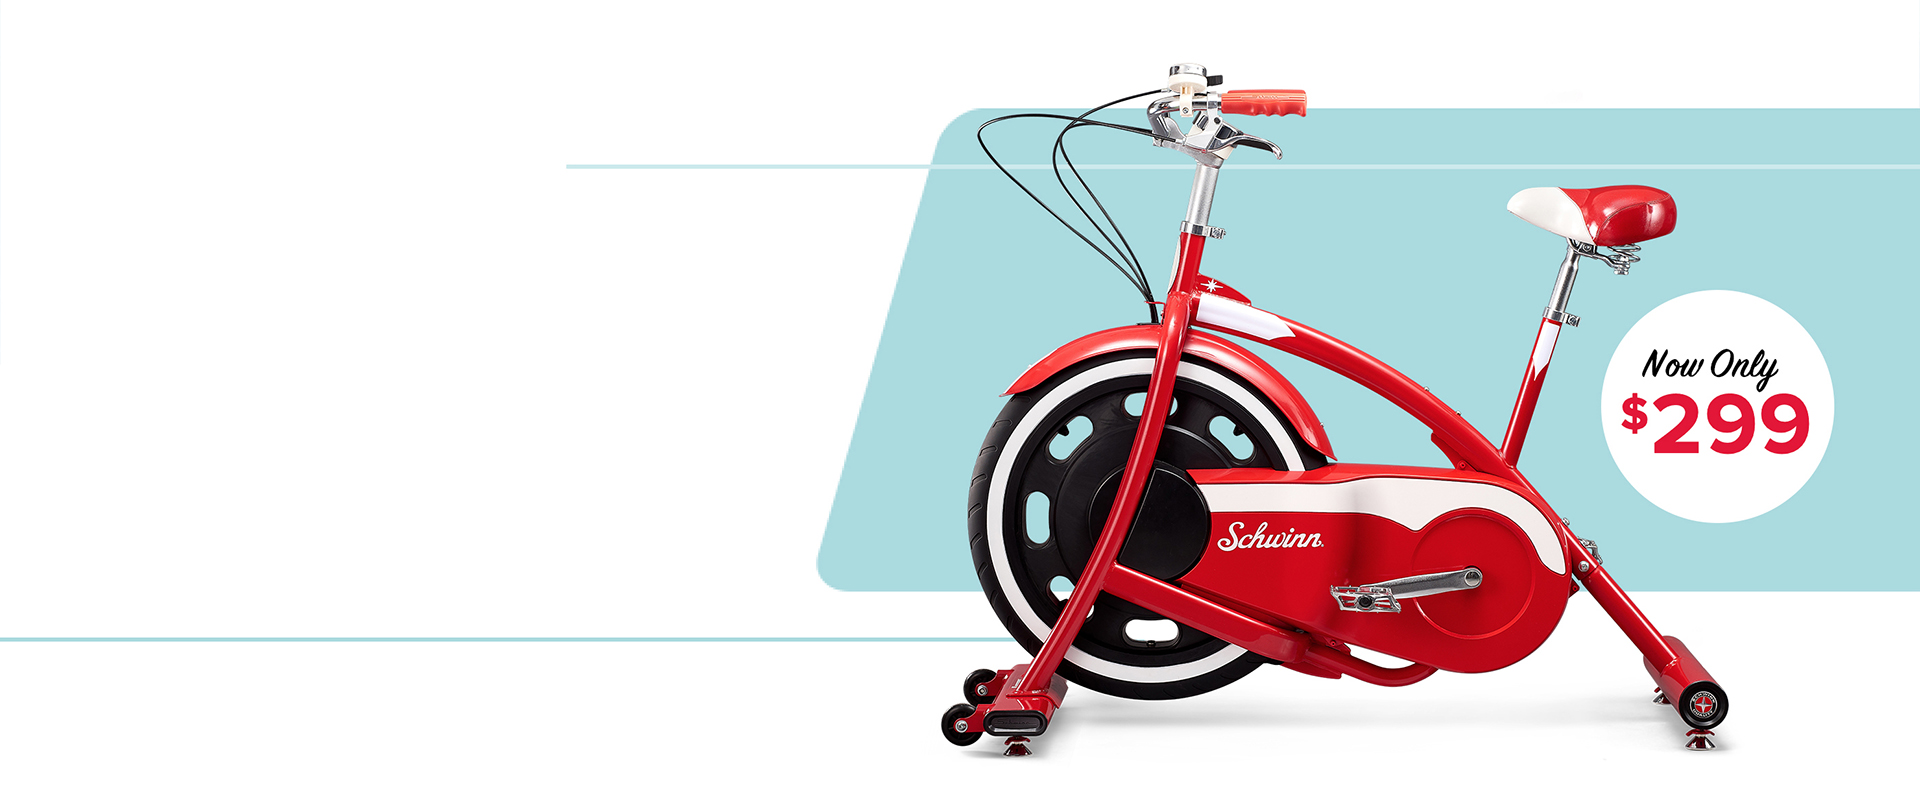 Classic Cruiser exercise bike - now only $299